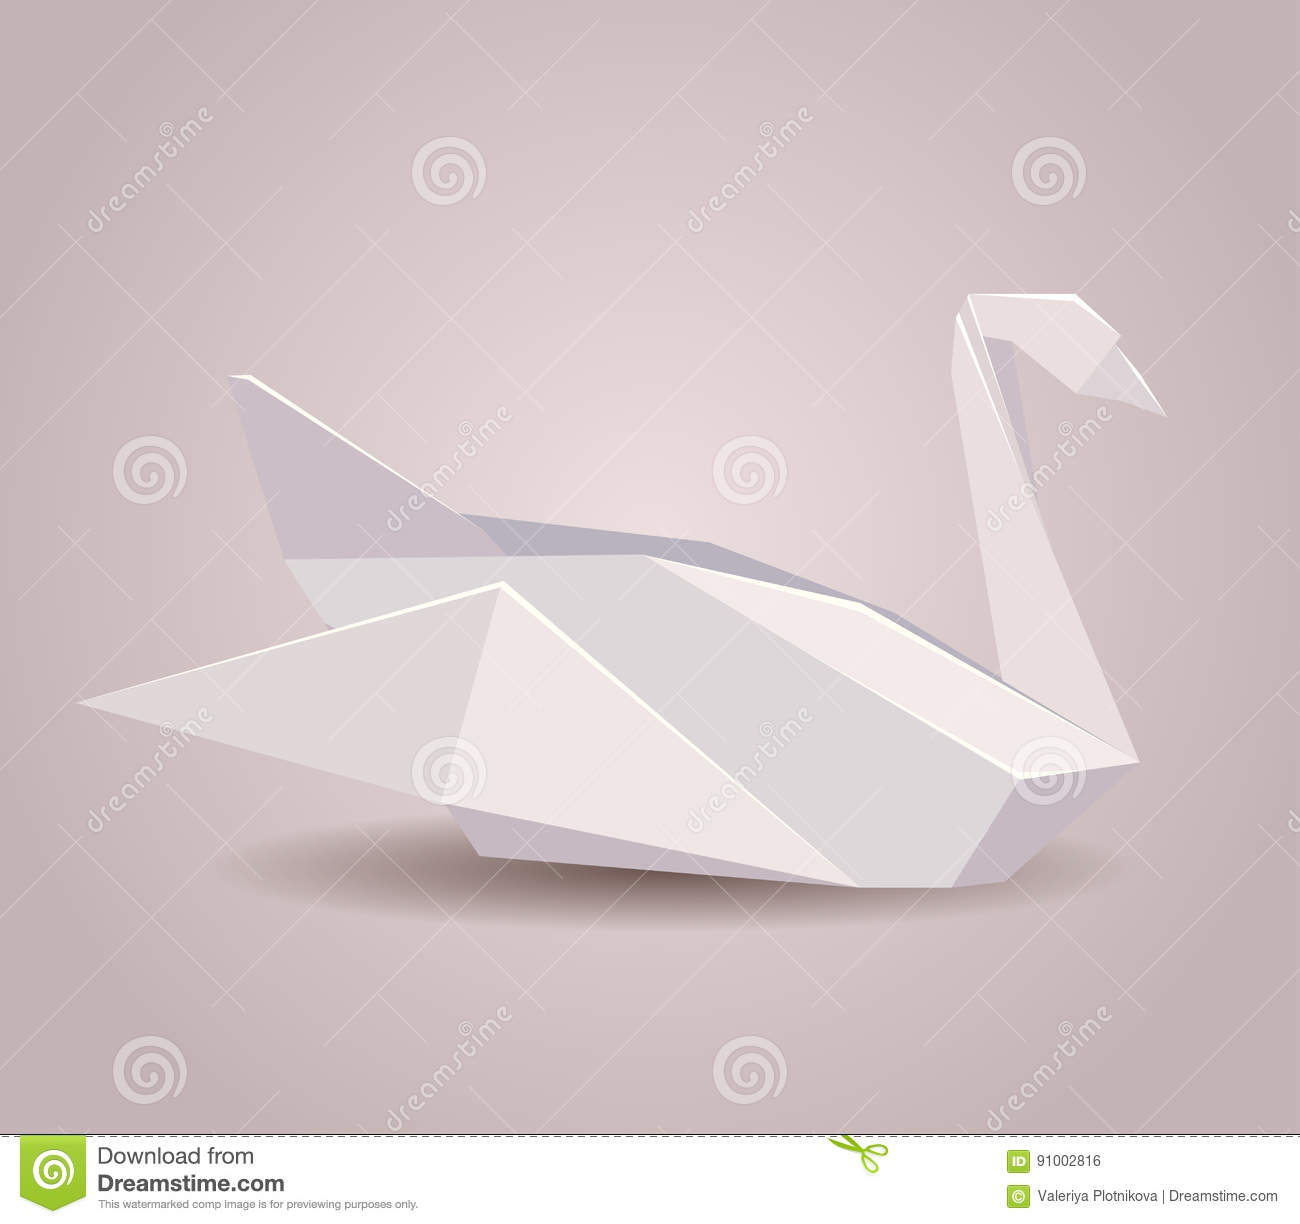 Download Illustration Of A Paper Origami Swan Zoo Stock Vector